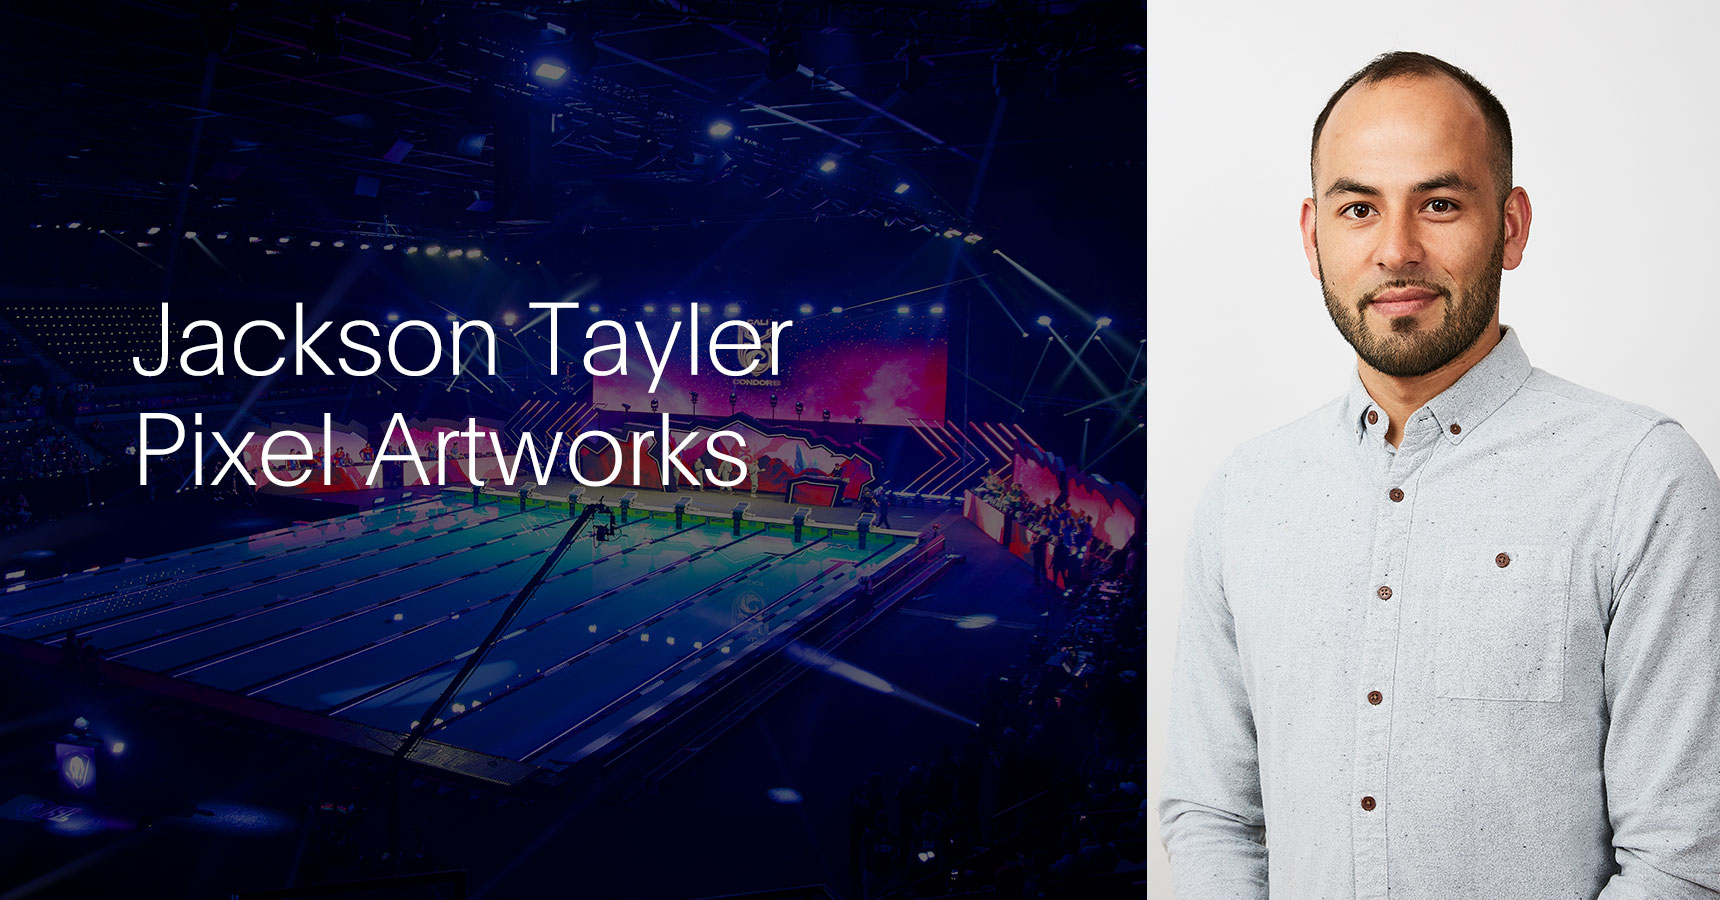 In conversation with Jackson Tayler from Pixel Artworks